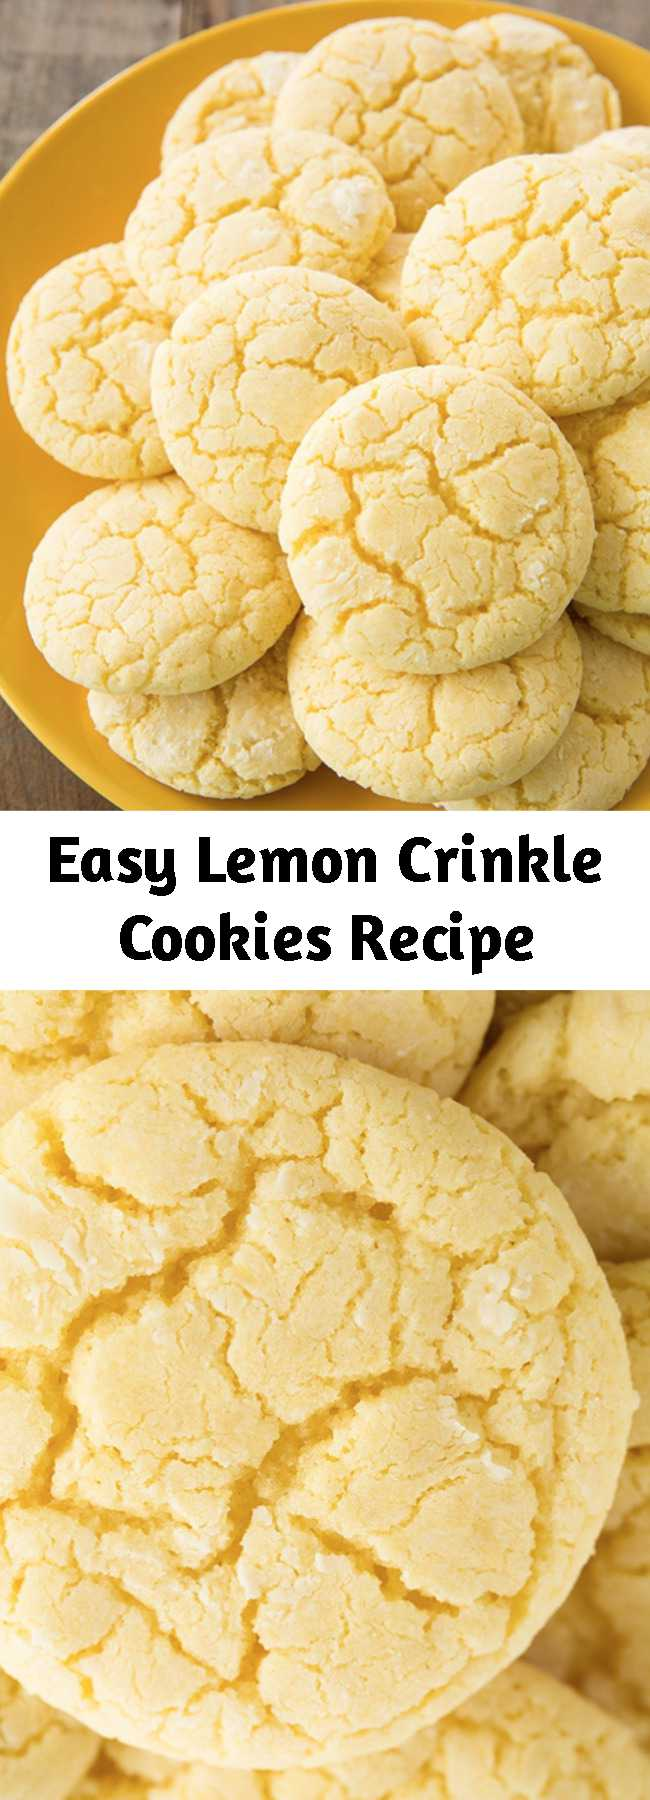 Easy Lemon Crinkle Cookies Recipe - These lemon crinkle crinkle cookies are the perfect dessert in the summer, but they also make the perfect holiday cookie in the winter. They're brimming with lemon flavor and have a delicious, soft texture. They just melt in your mouth when they are warm out of the oven. Plus, they take less than 25 minutes to prepare!